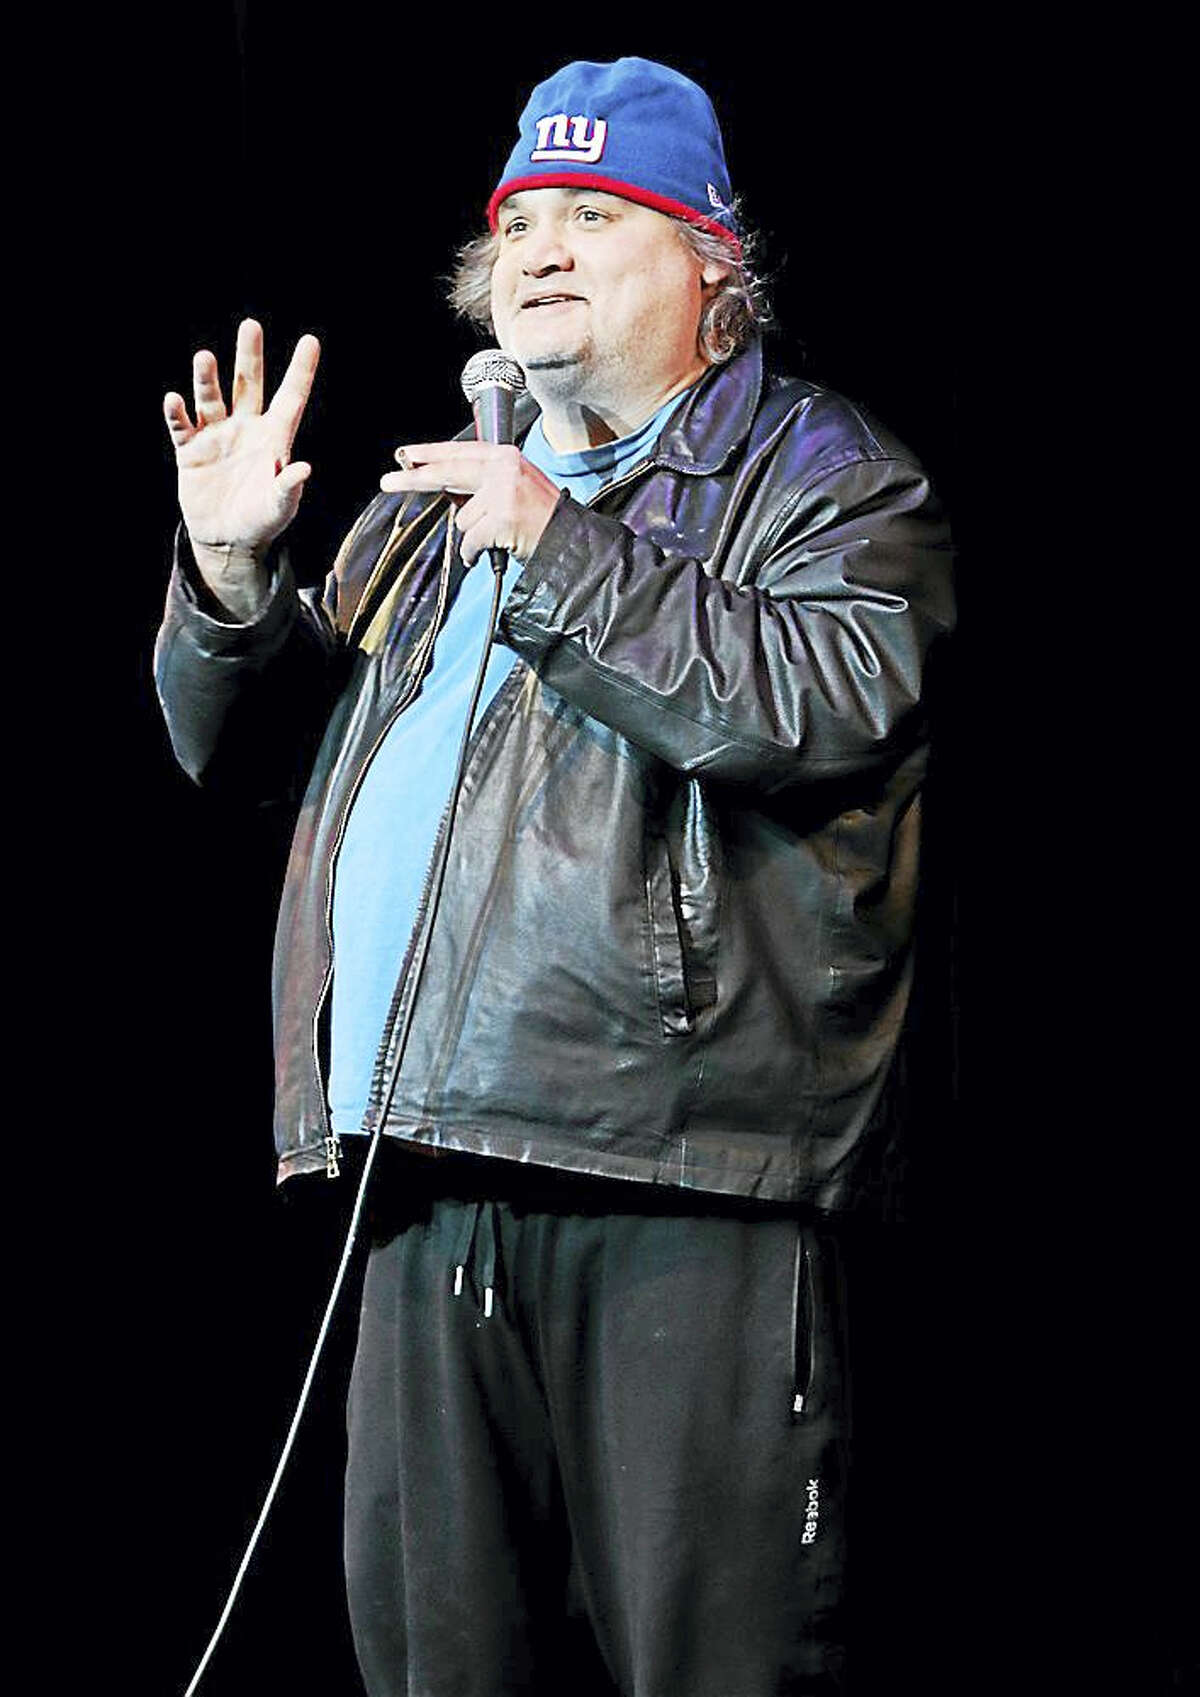 Photo by John Atashian Comedian, actor, author, and radio & podcast host Artie Lange, best known for his tenures on The Howard Stern Show and Mad TV, is shown performing on stage during an appearance at Foxwoods Resort Casino in Mashantucket on Jan. 27.